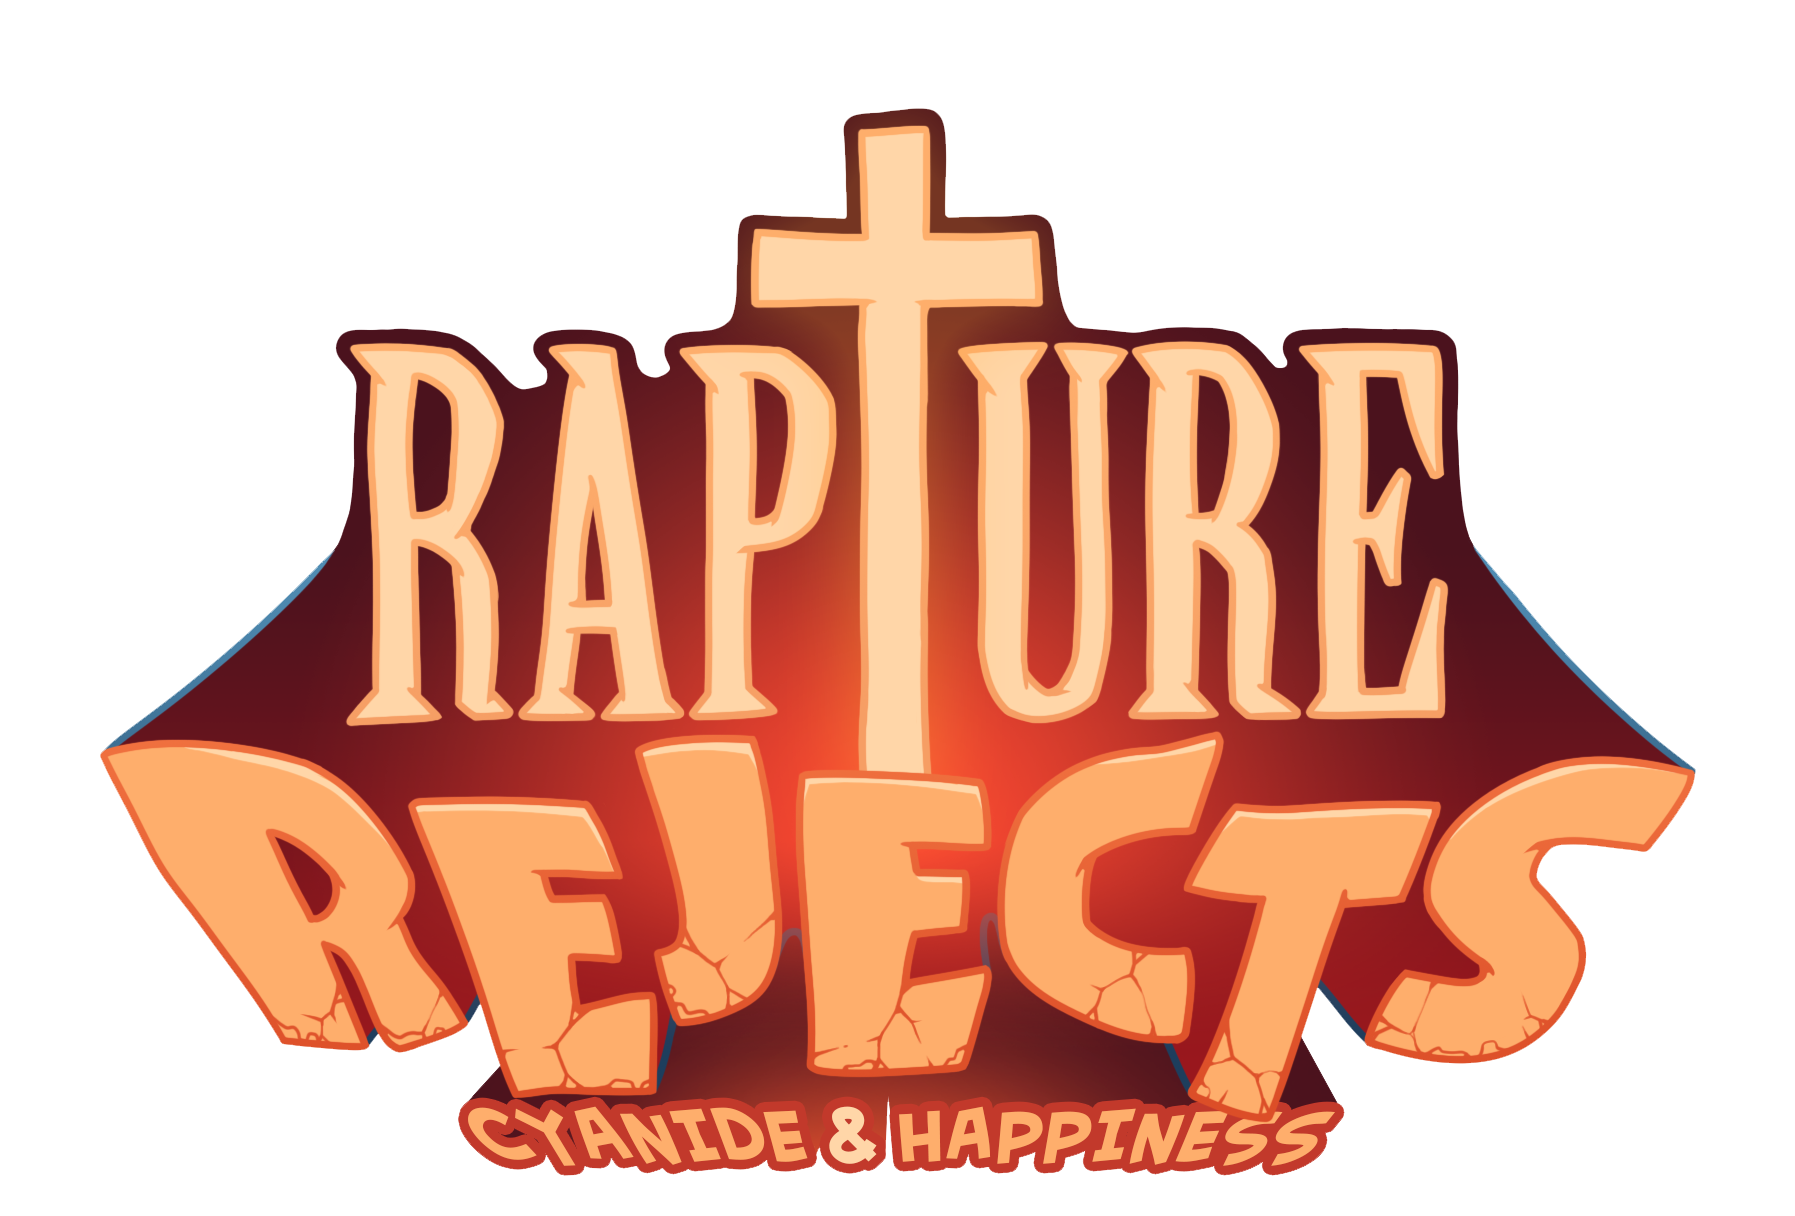 Cyanide and Happiness-based battle royale Rapture Rejects ...